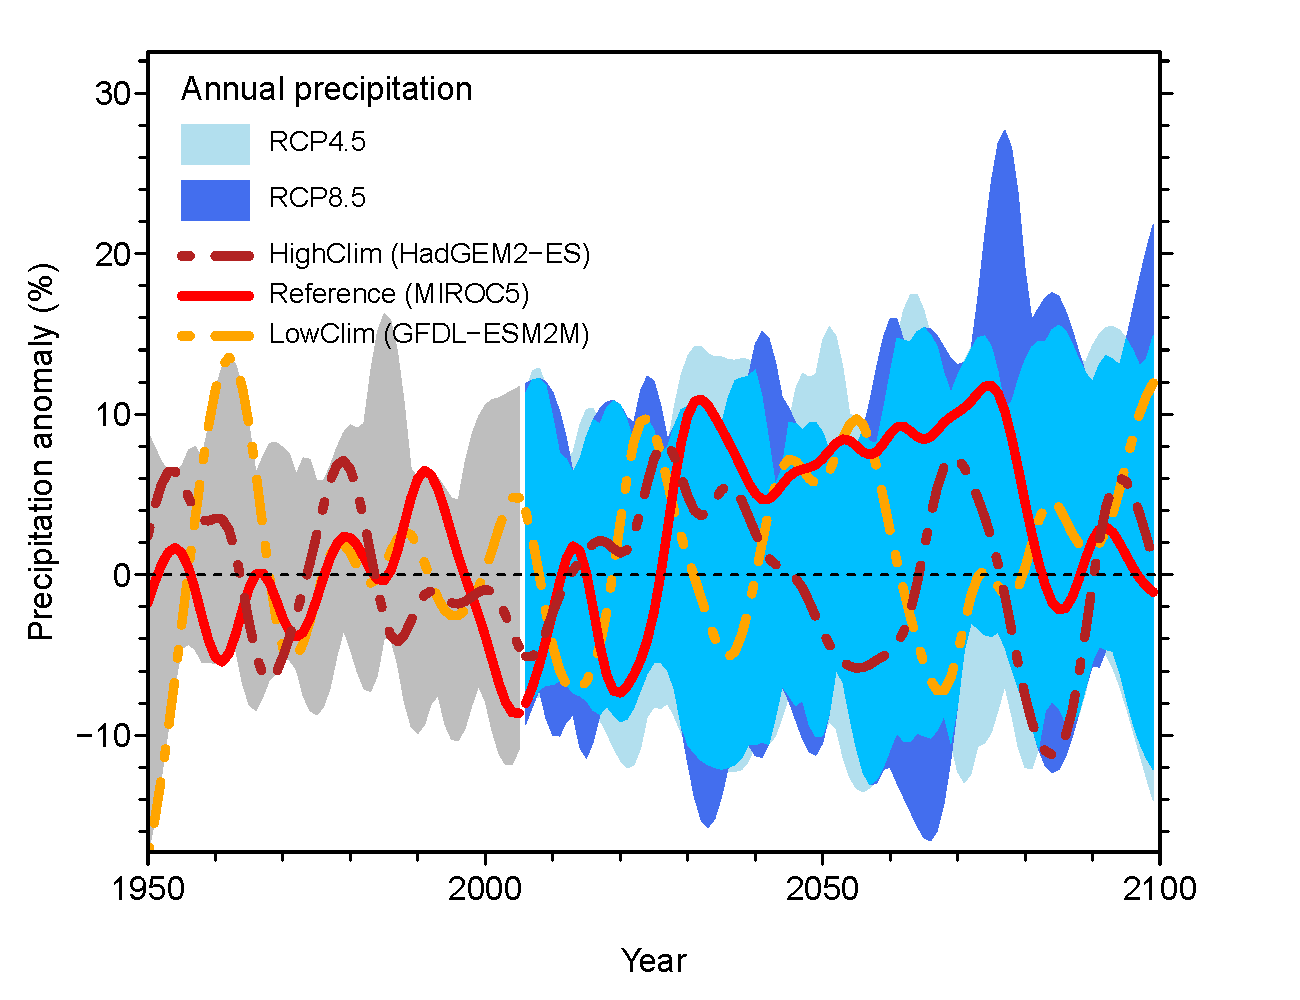 Projected differences (as percentages) in annual precipitation for 1950-2100 from a historical baseline (mean of 1950-2005).